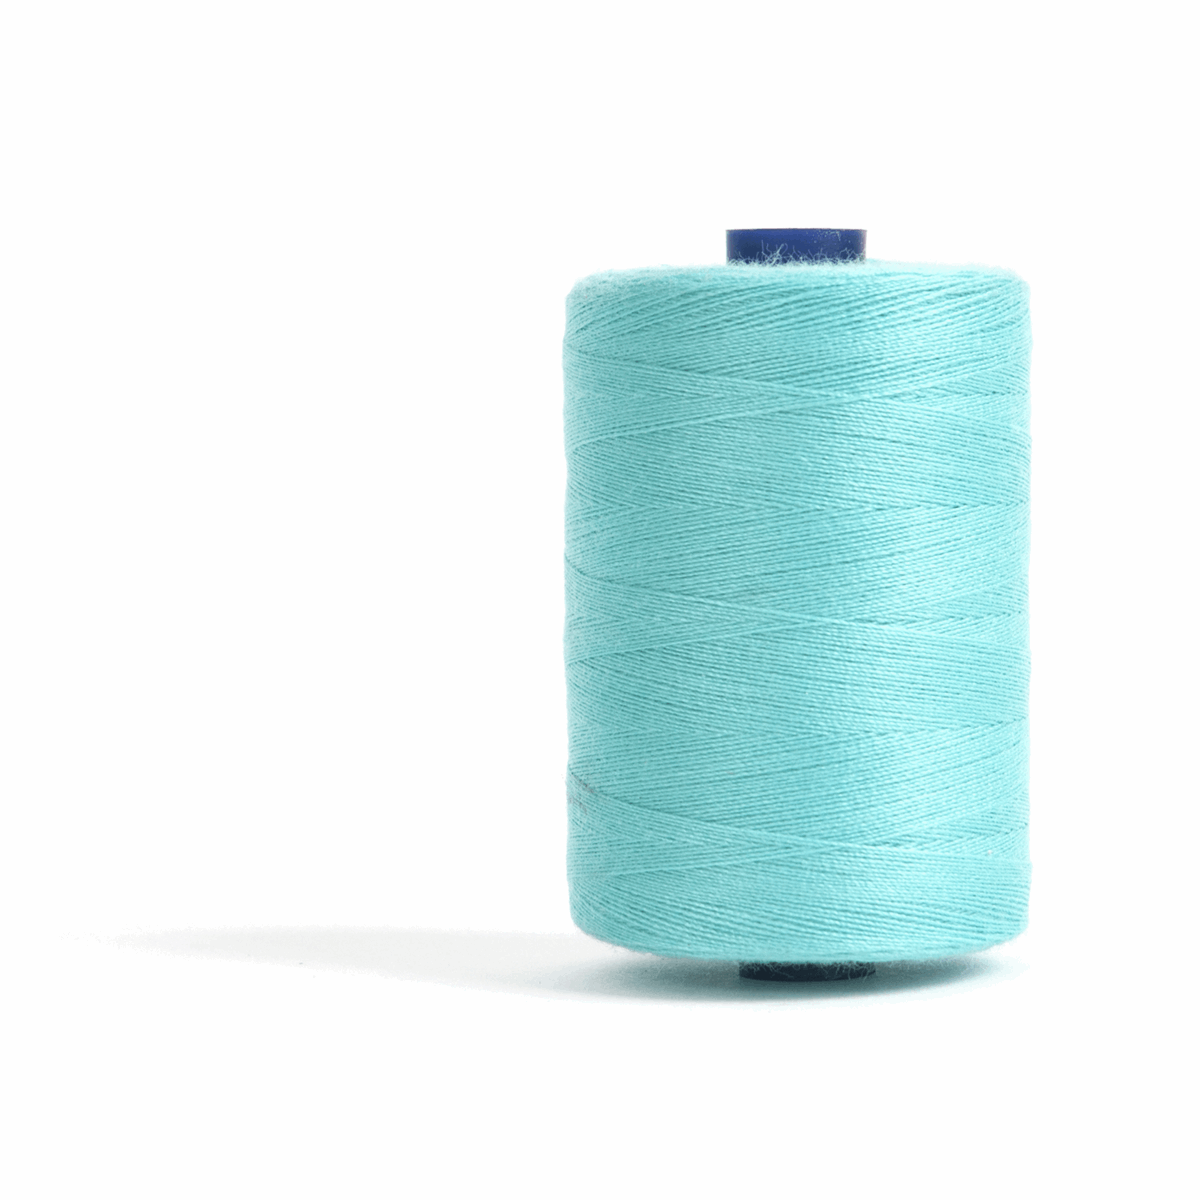 Picture of Sewing and Overlocking Thread: 5 x 1,000m: Turqoise